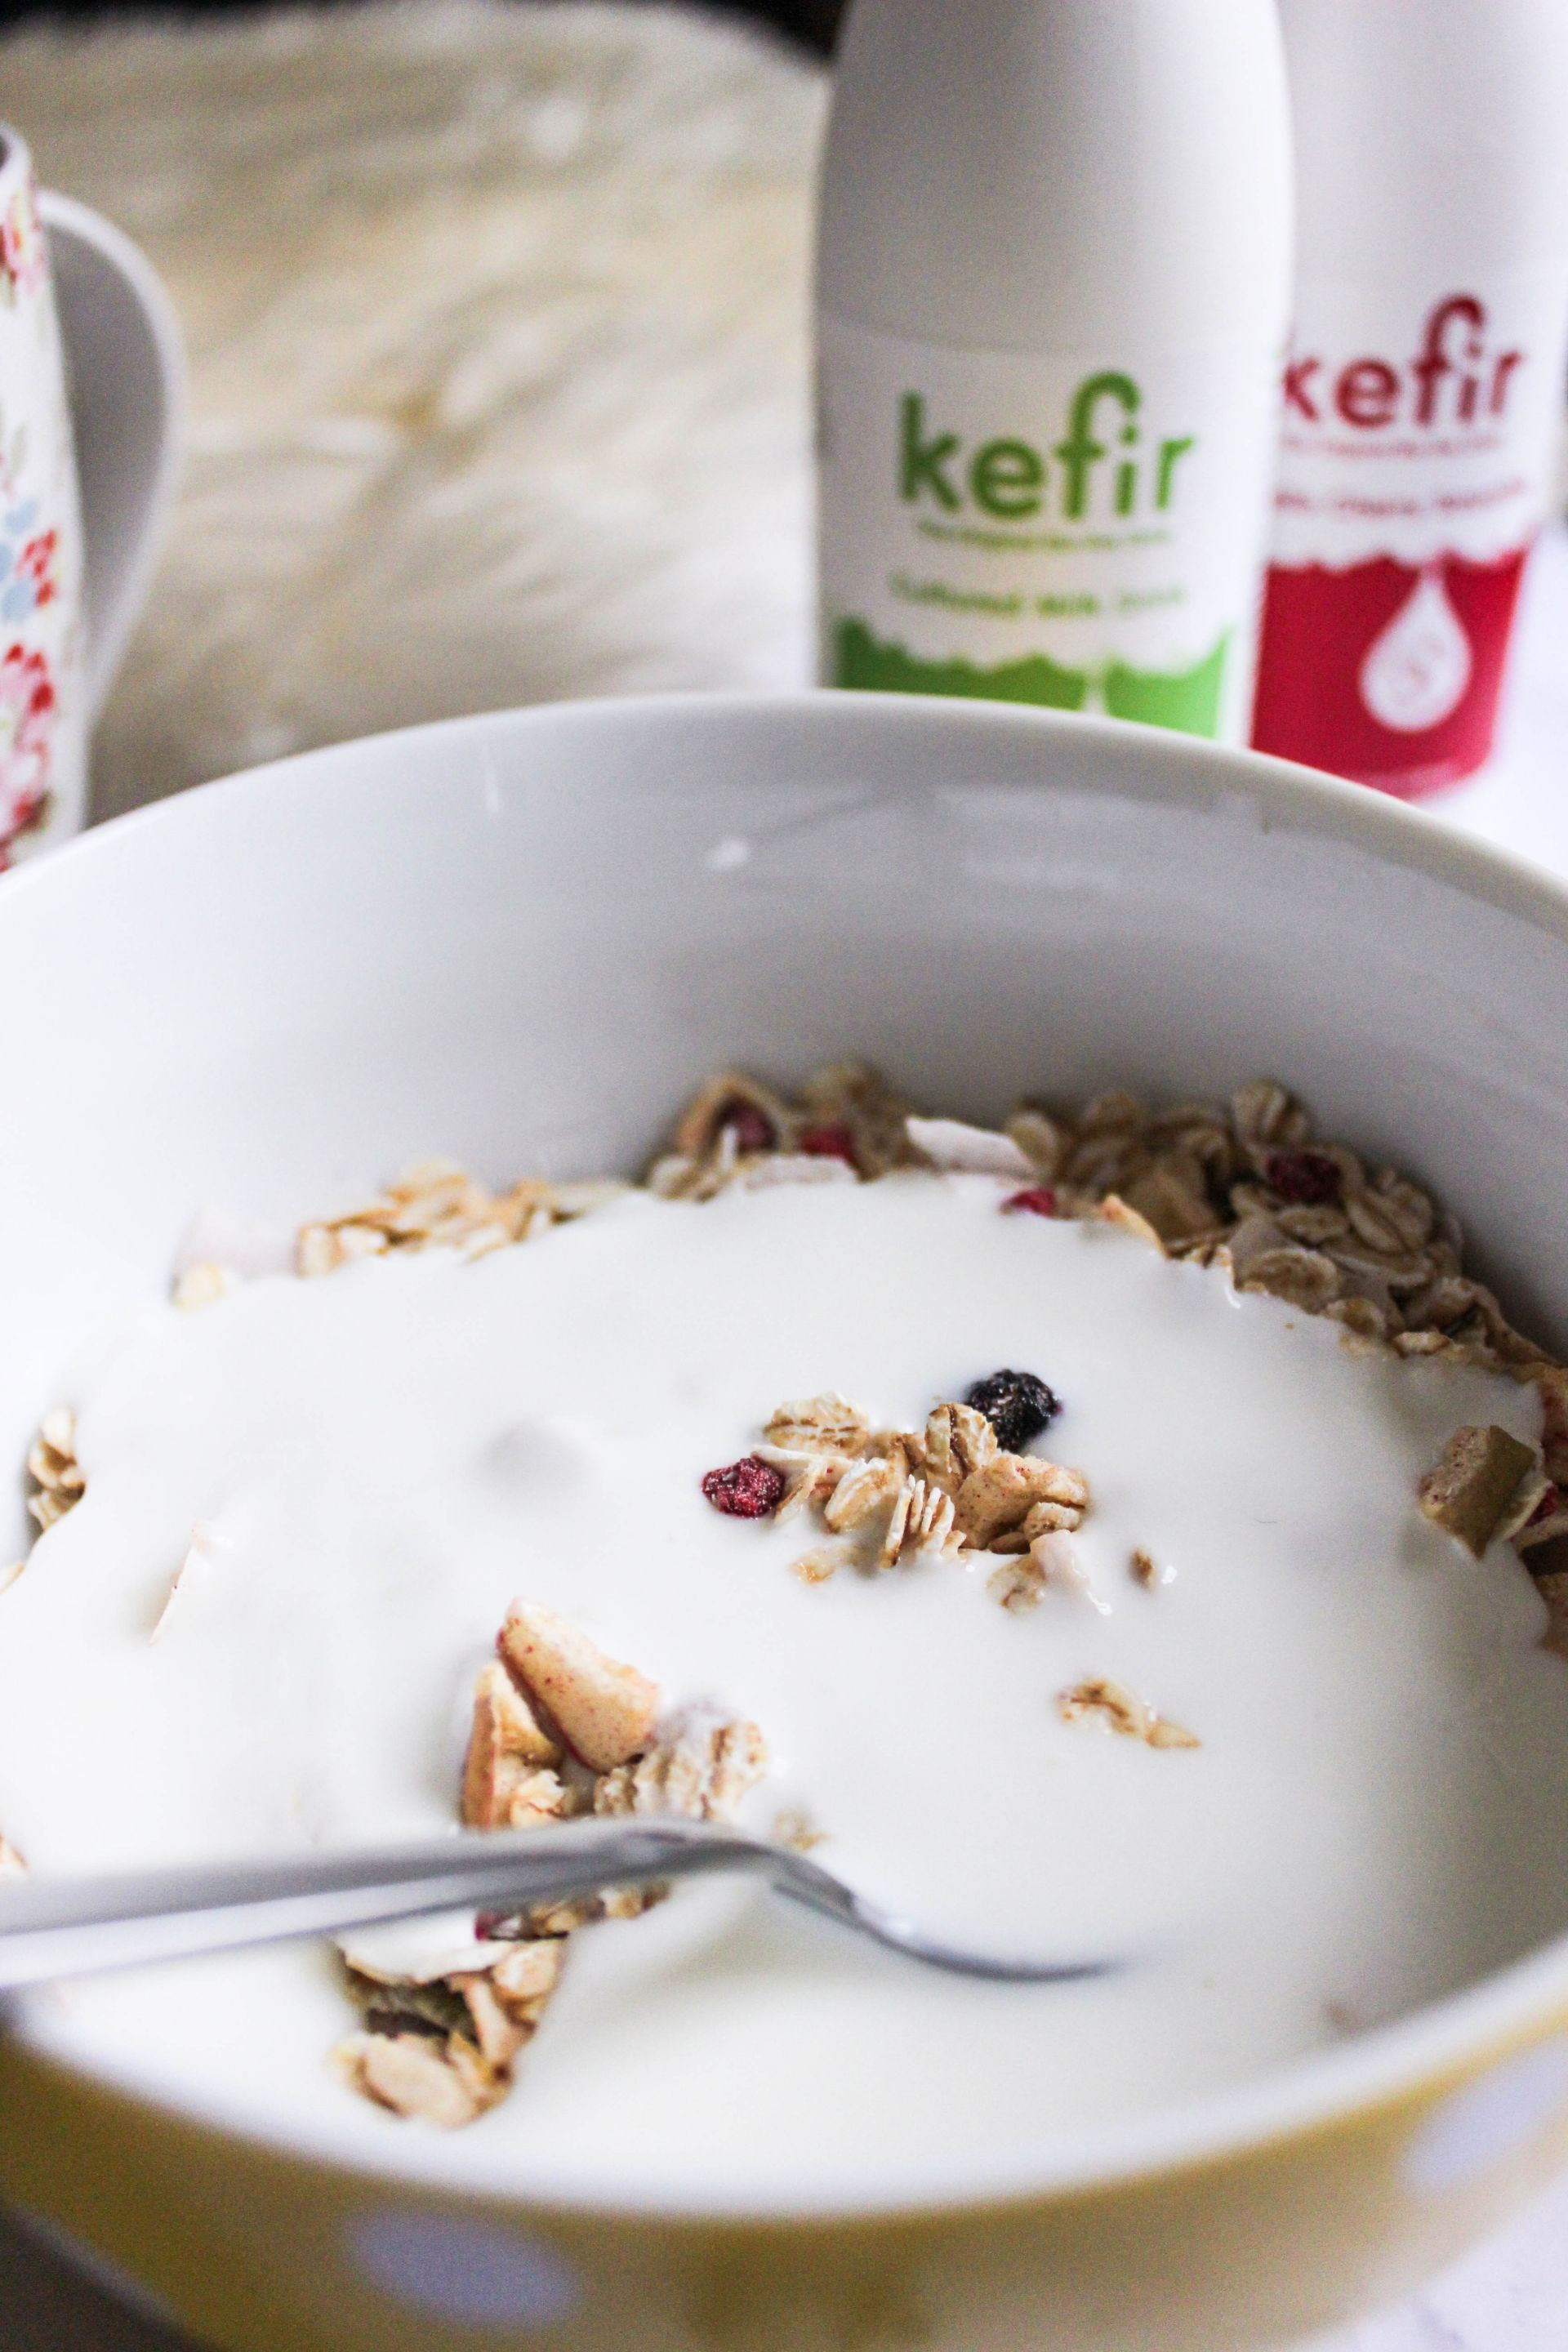 bio-tiful dairy kefir london review